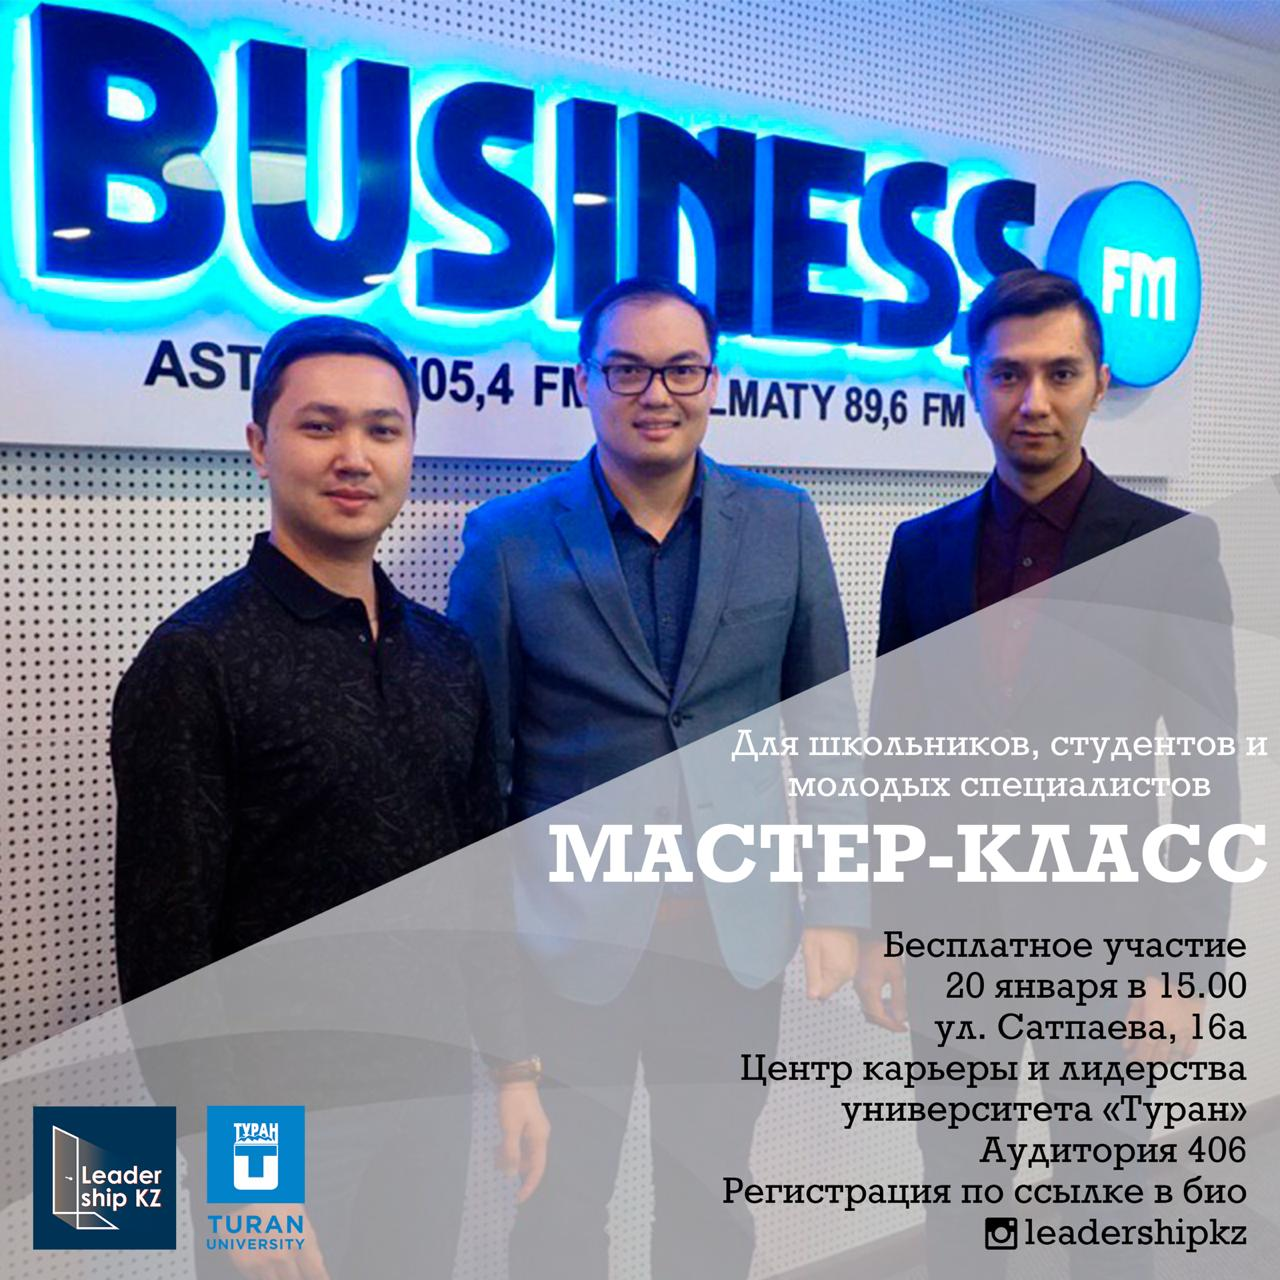 Мастер-класс от основателей первого в Казахстане делового радио Business FM